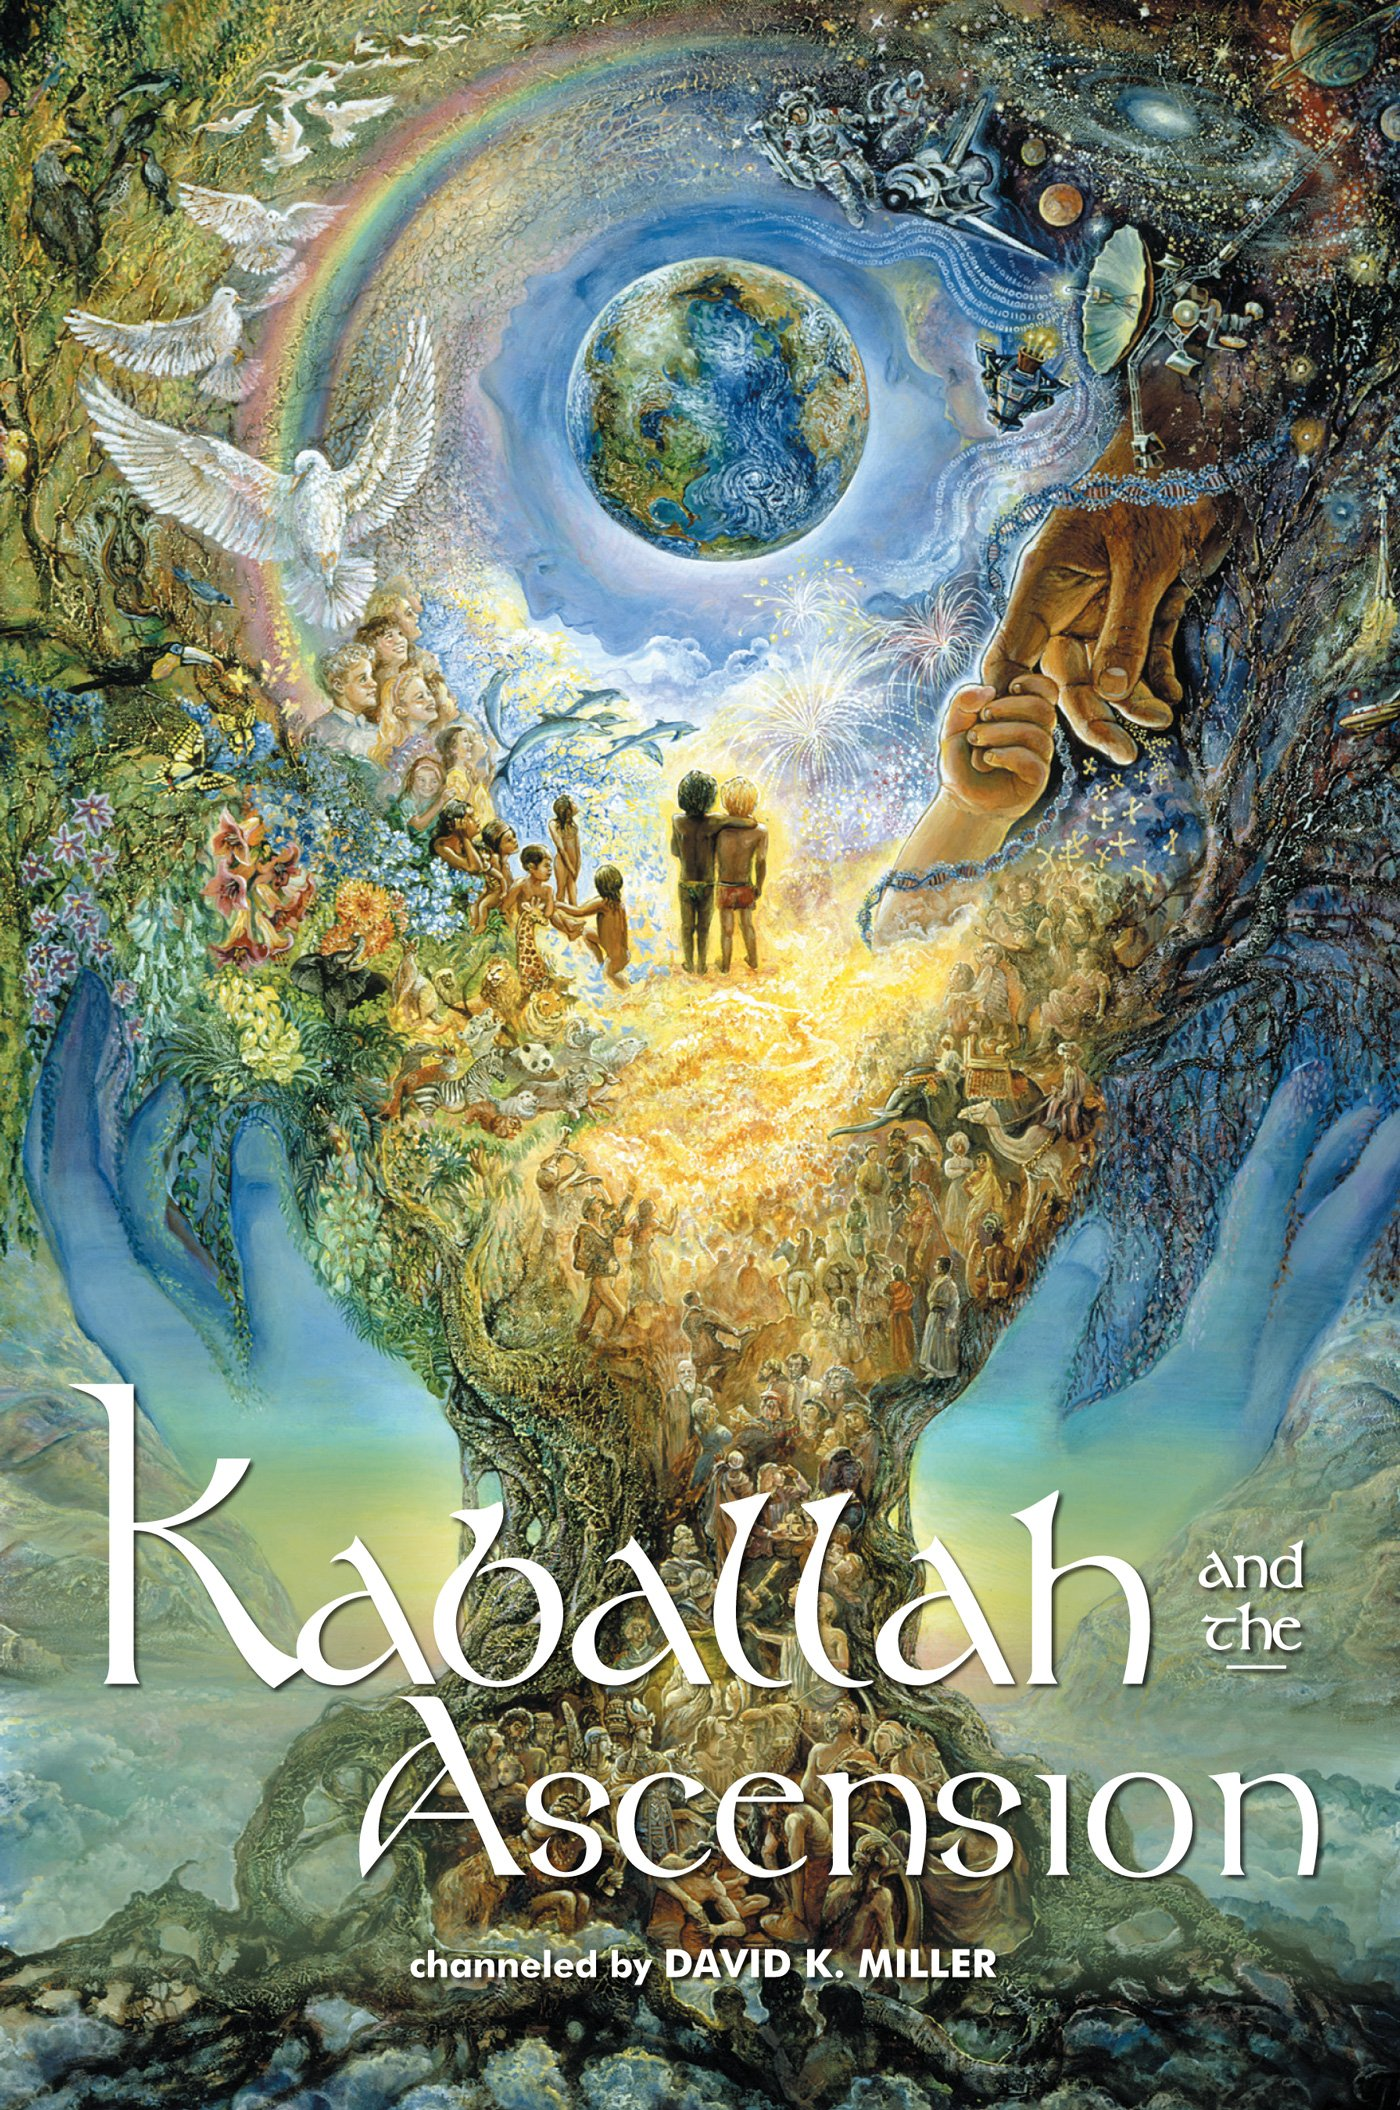 Kaballah and the Ascension